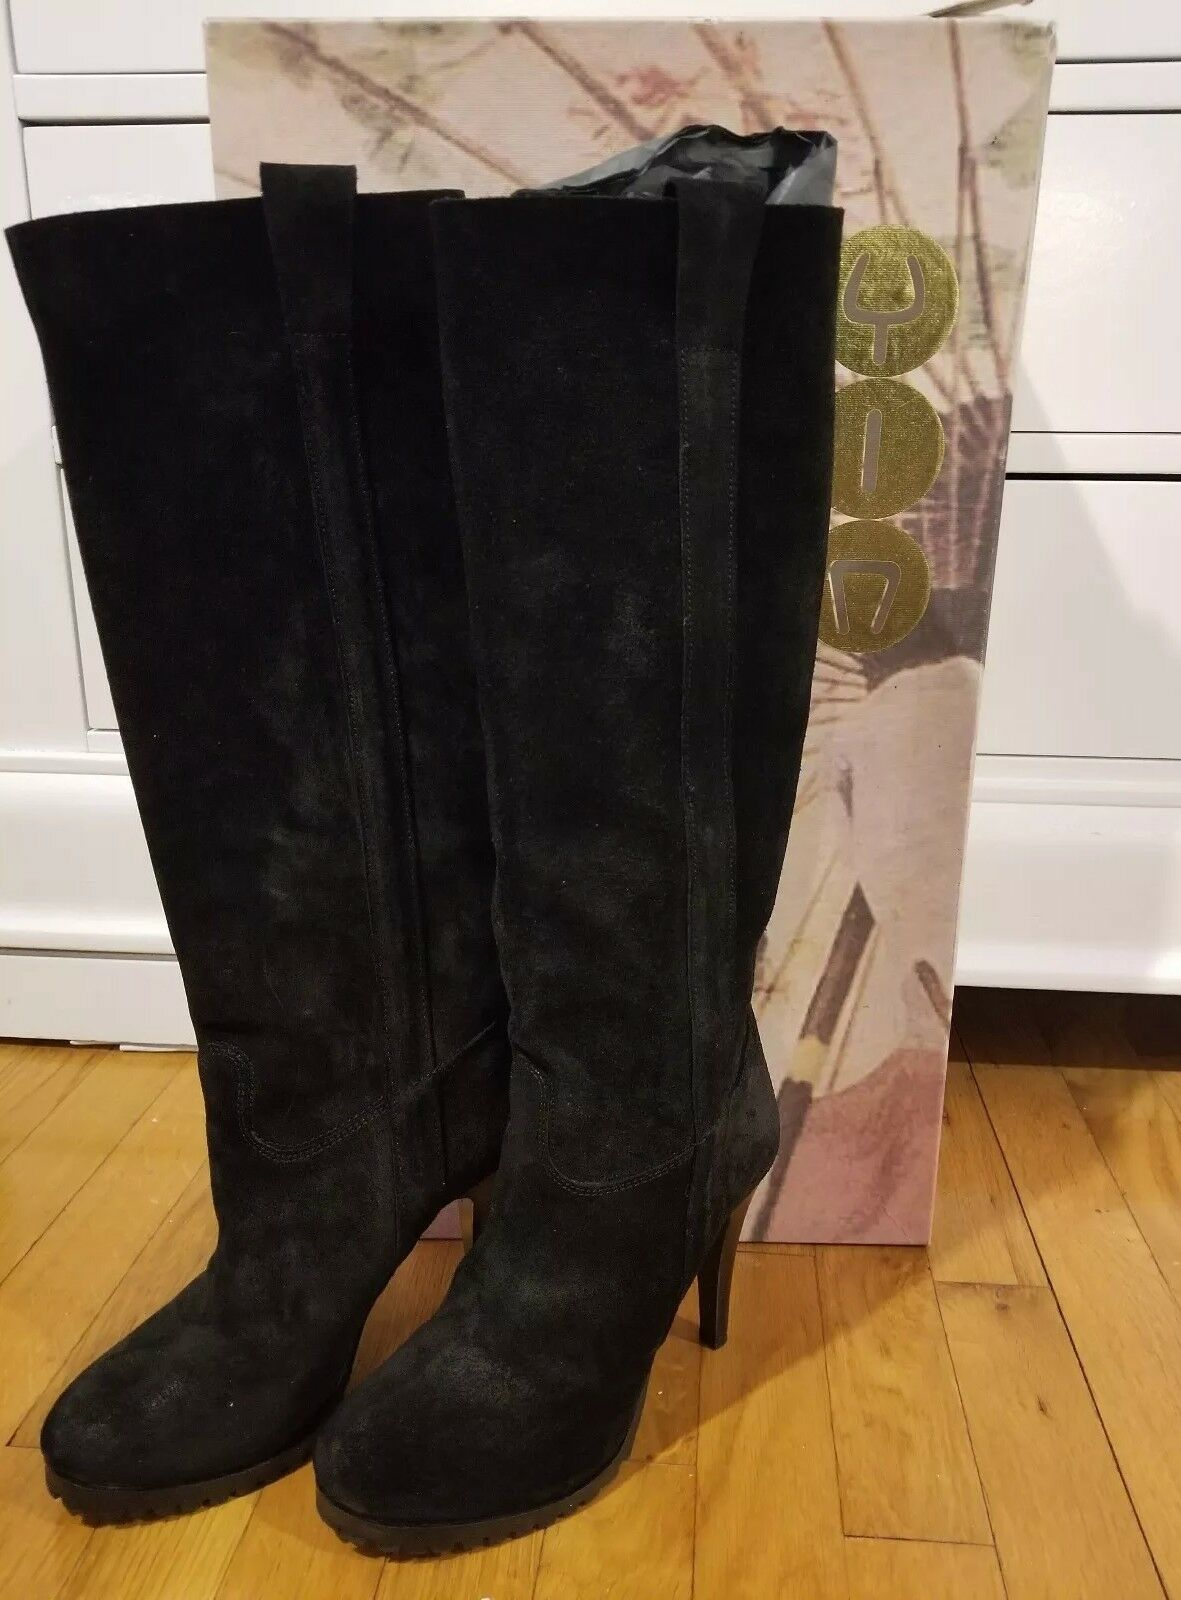 575 New in the box, YIN Sexy Black suede knee high boots size 7, 4 inch heels